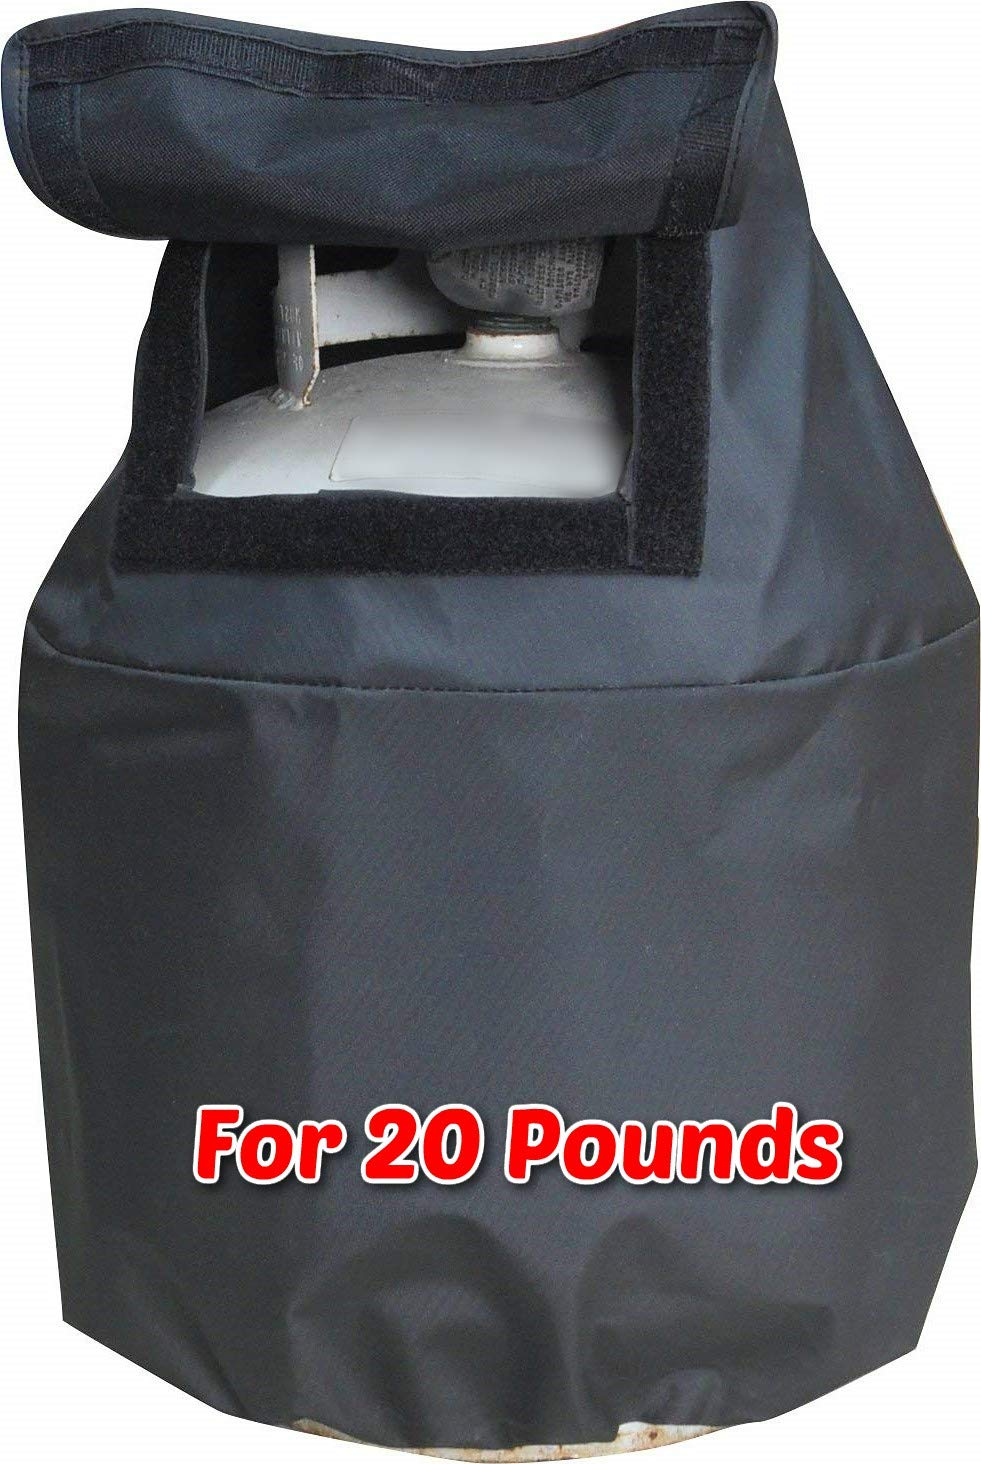 RV Propane Tank Cover for 20 Pounds 20Lb Cylinder Heavy Duty Polyester UV Resistant Strong and Durable, RV and Outdoor Accessories & Free Ebook by Stock4All